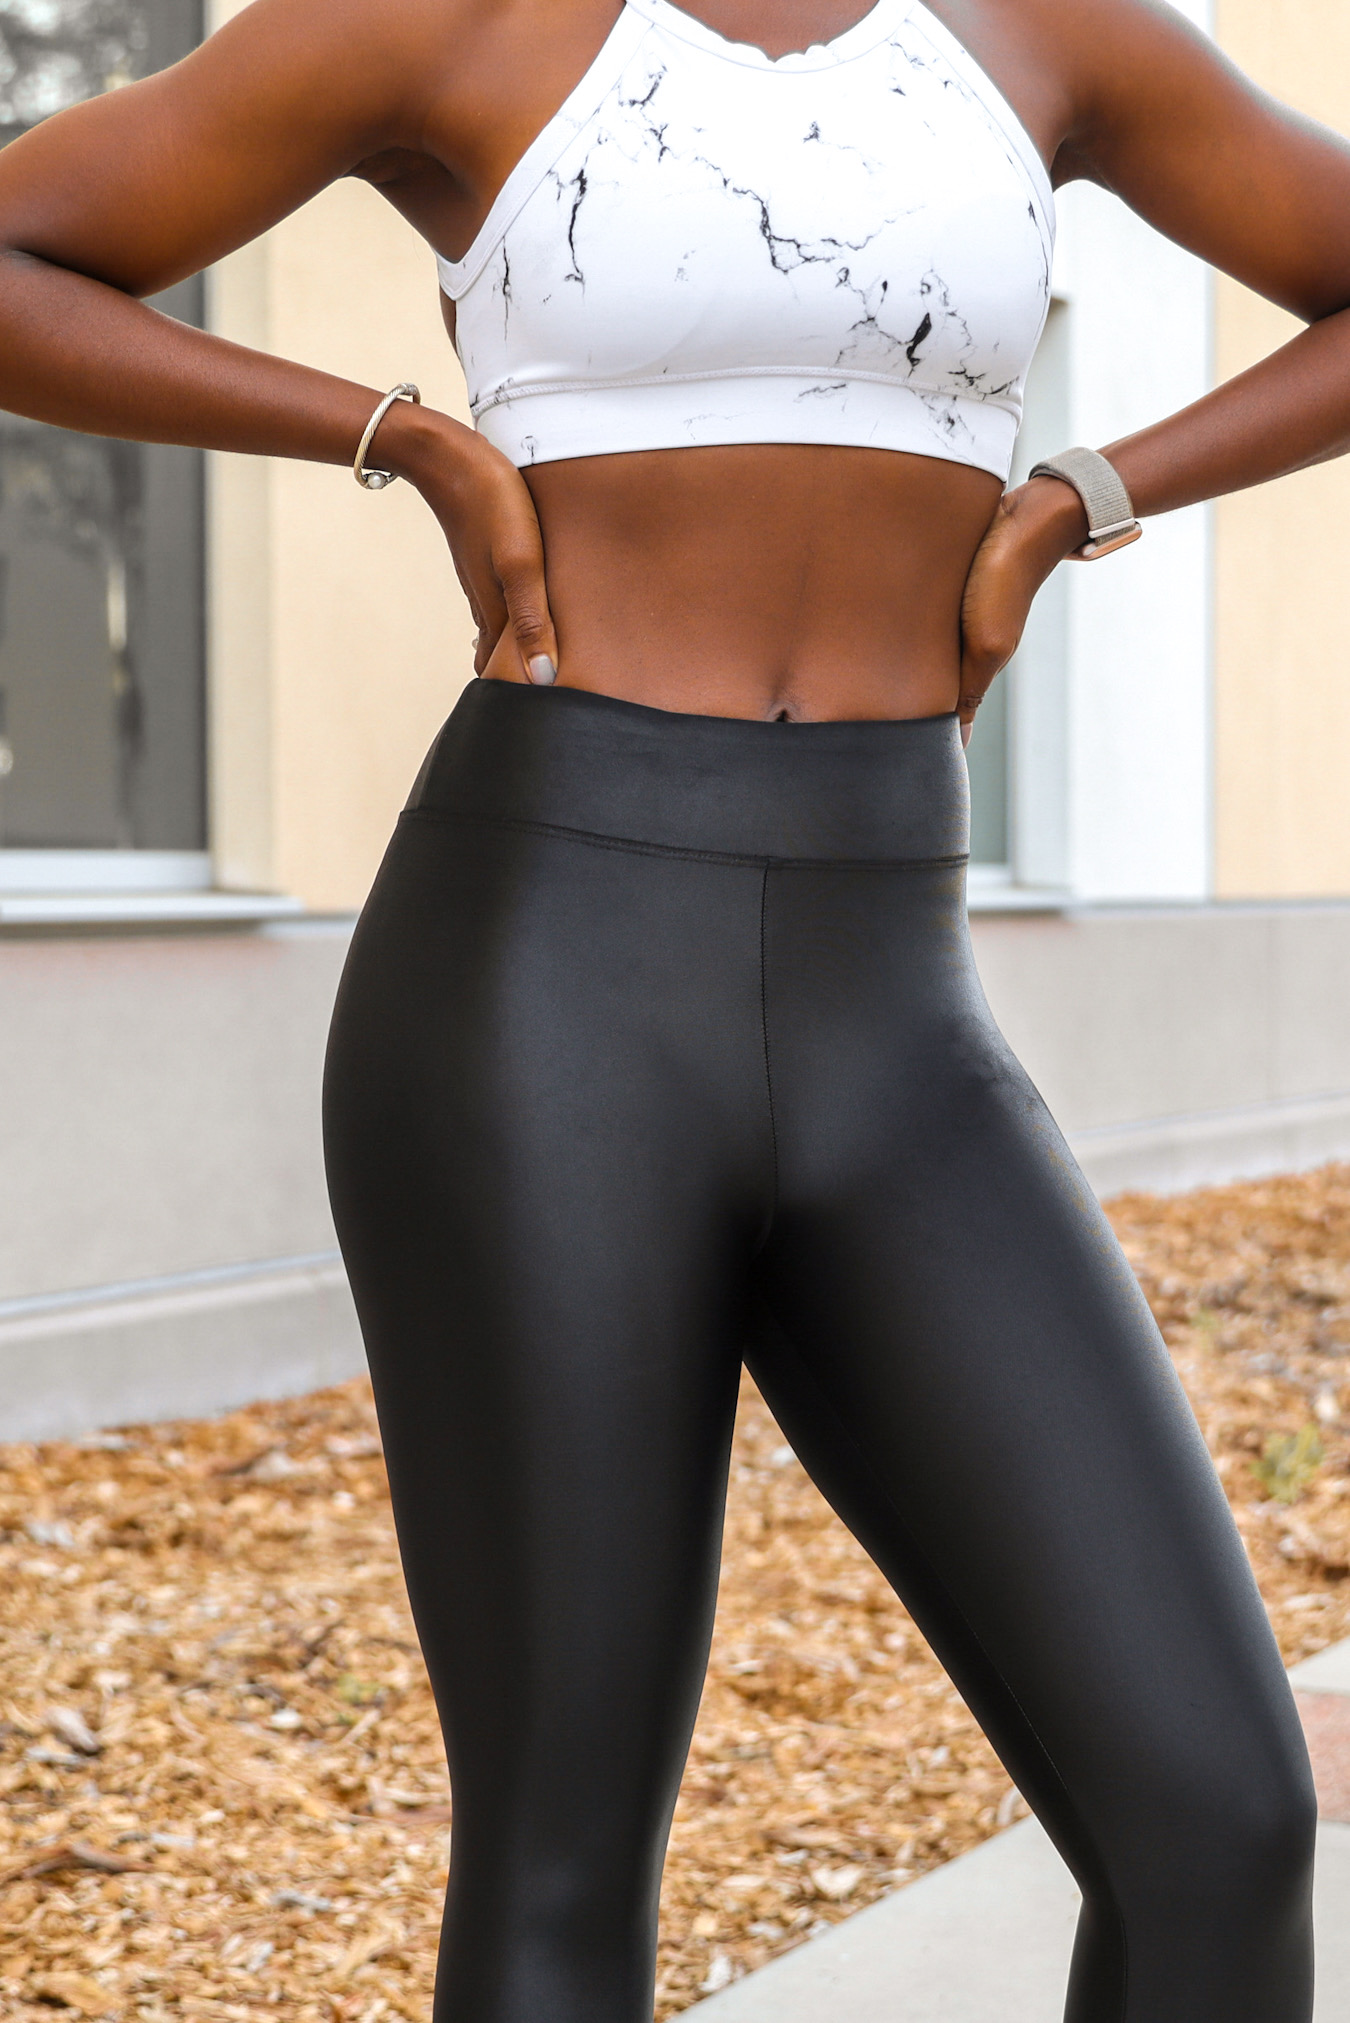 Are Koral leggings true to size?